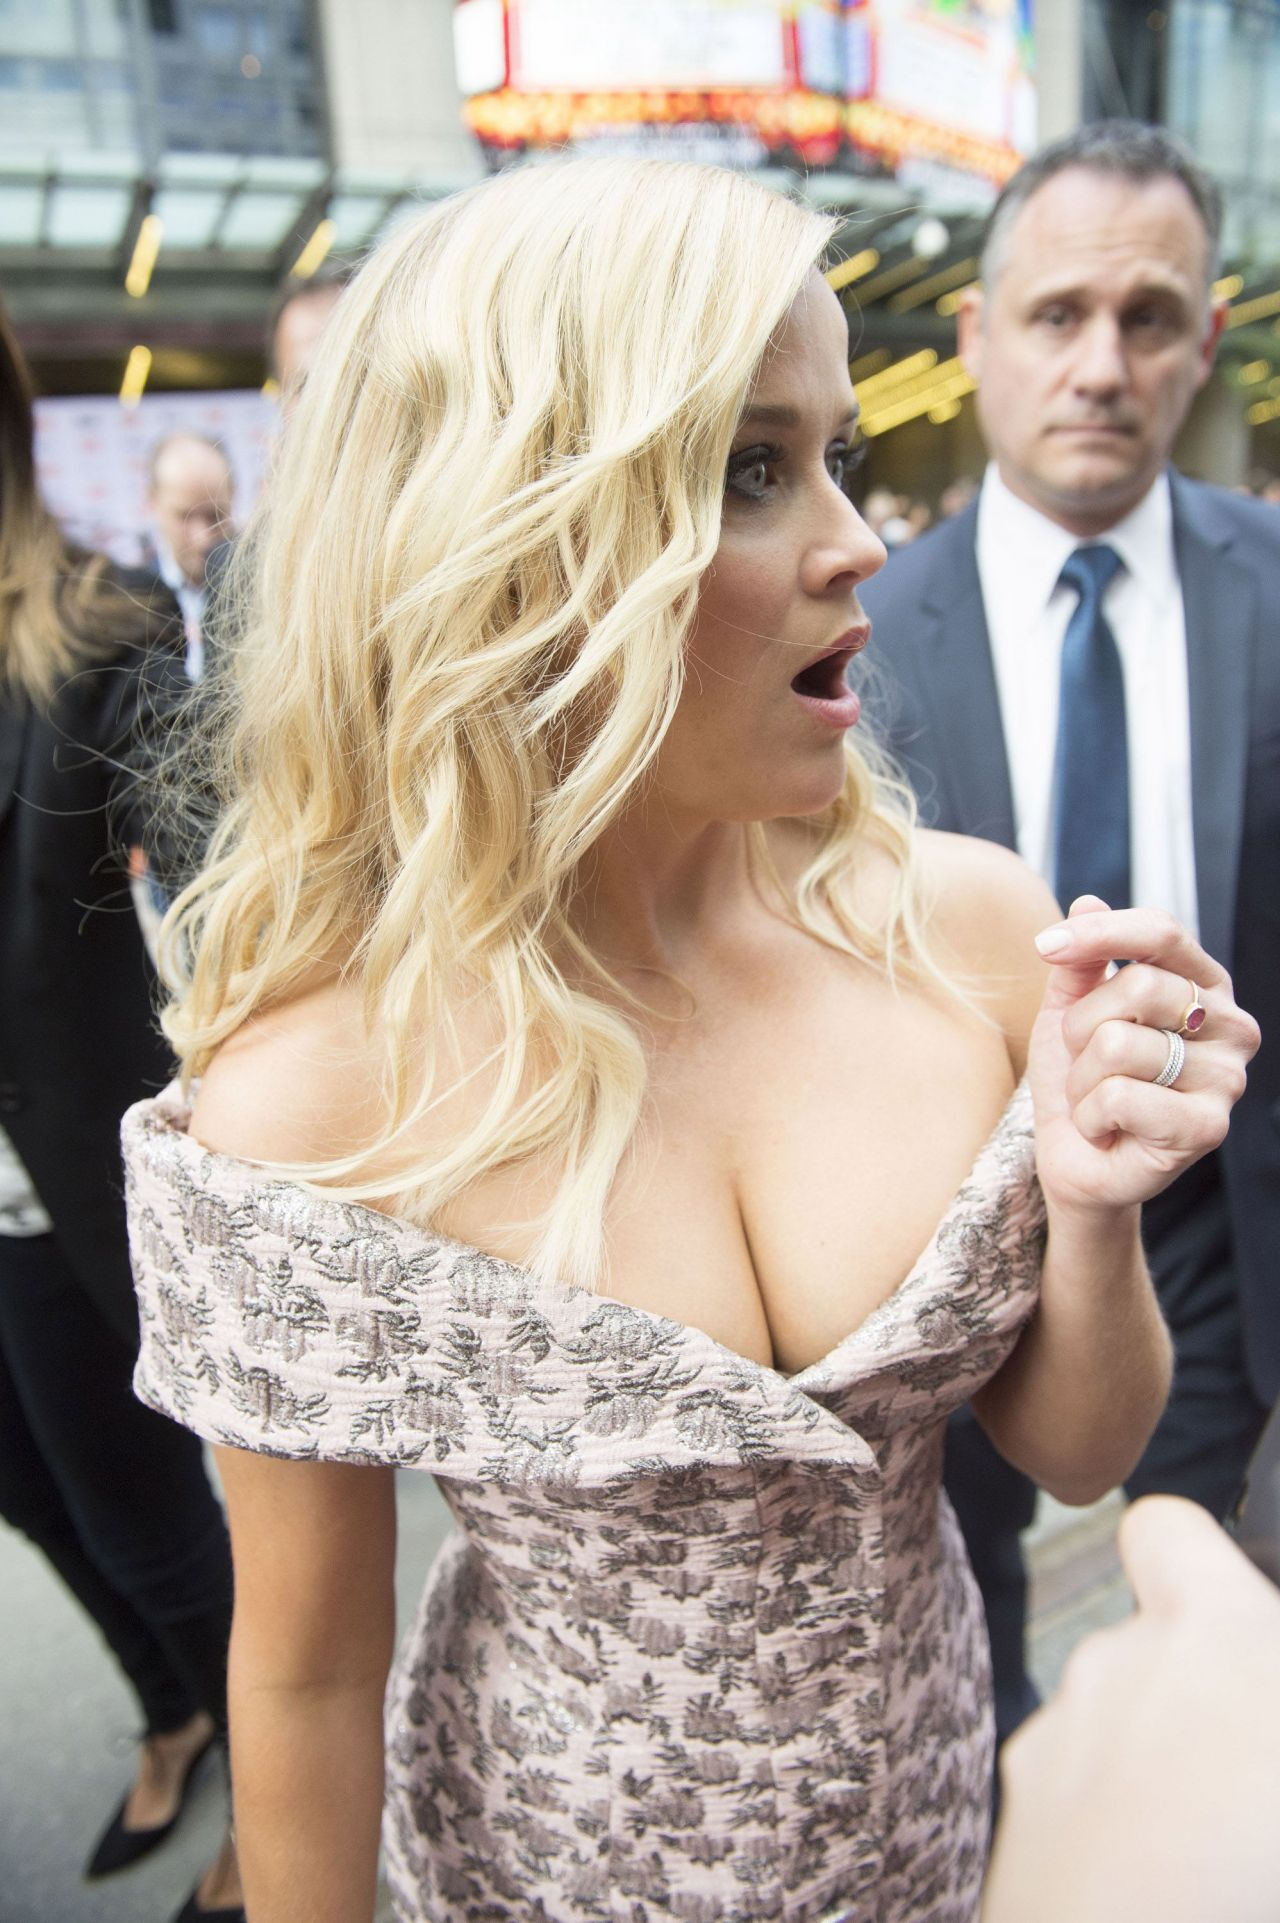 Reese Witherspoon Sing Premiere At Toronto